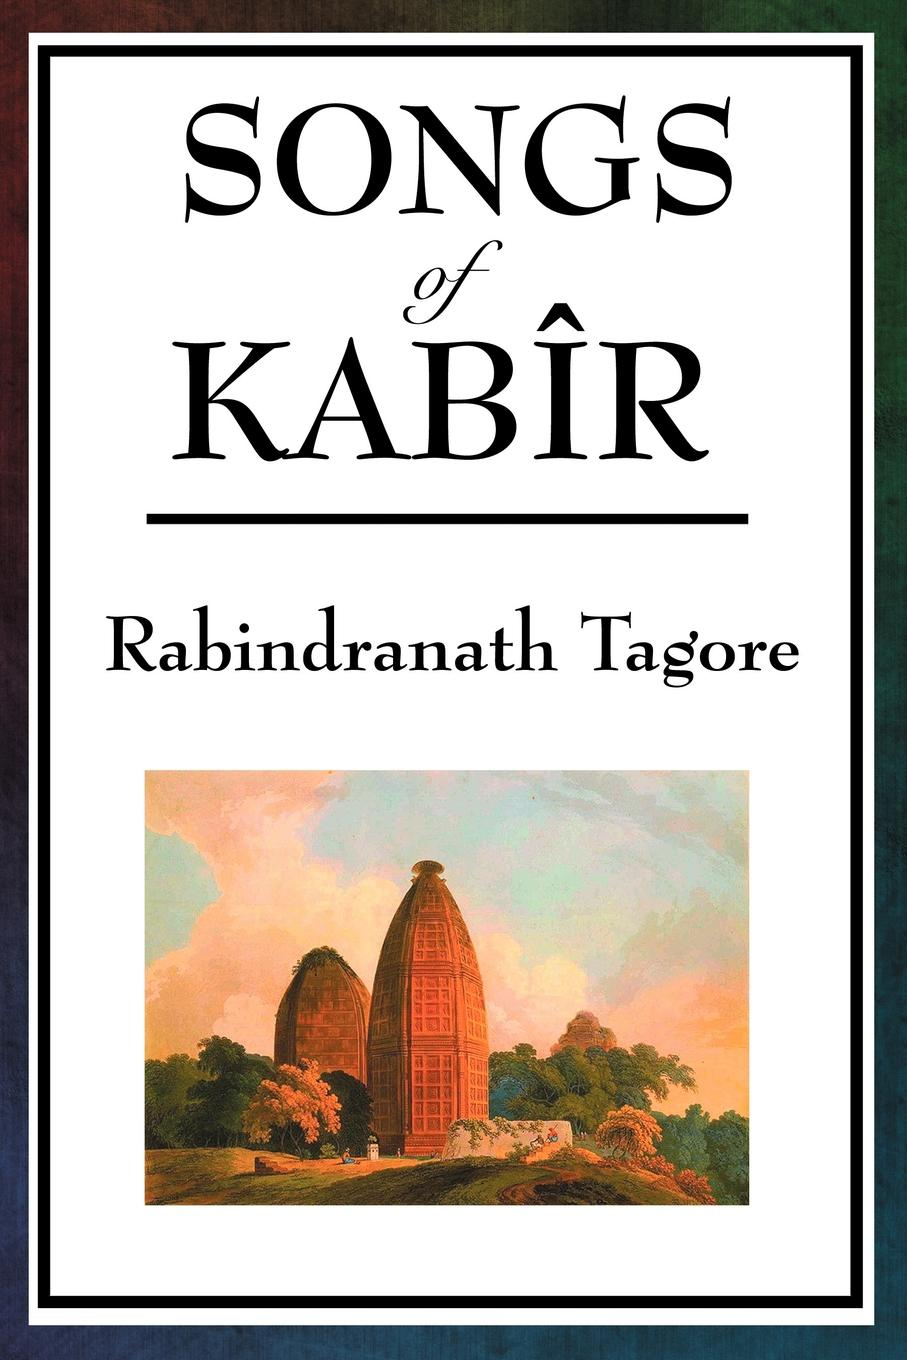 Songs of Kabir By: Rabindranath Tagore